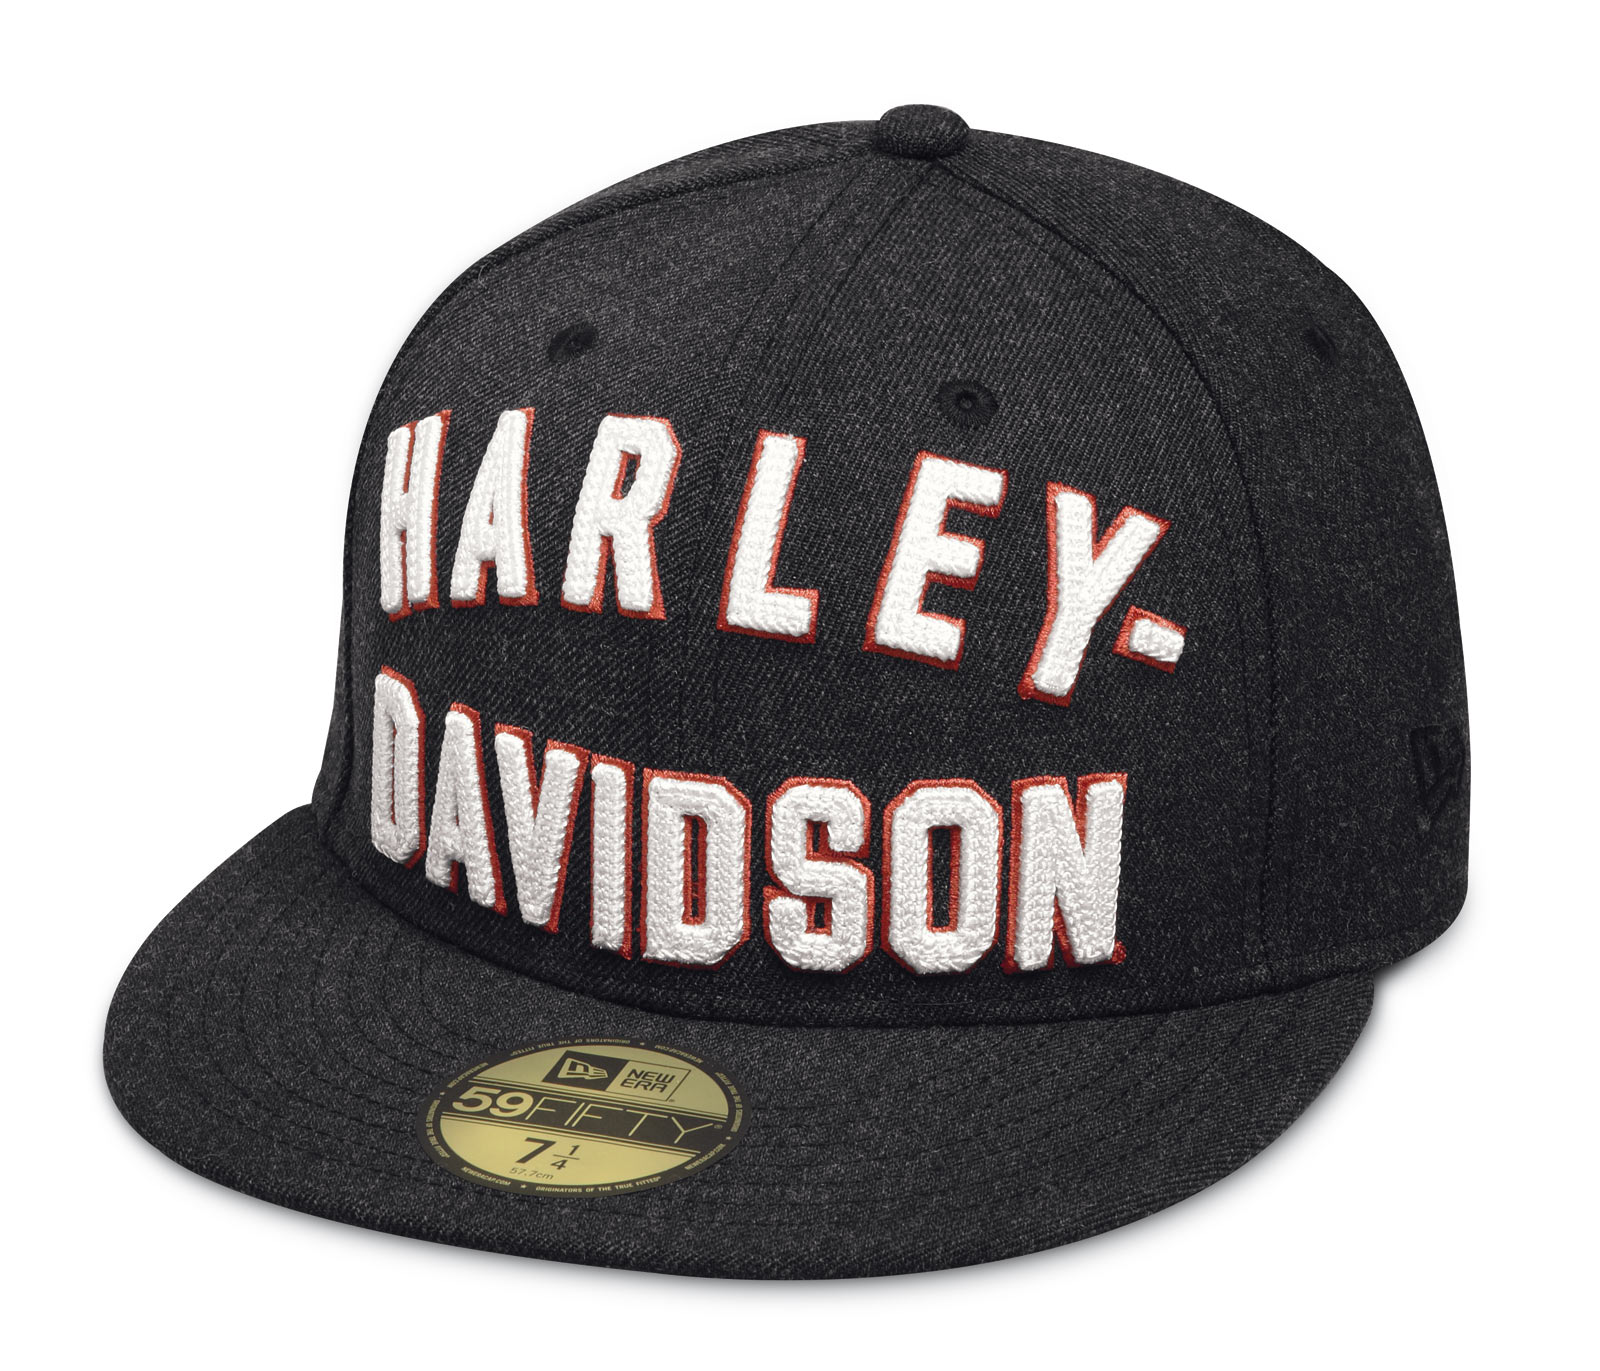 Harley Davidson Fitted Hats: 99461-17VM Harley-Davidson Chain Stitch 59FIFTY Cap At